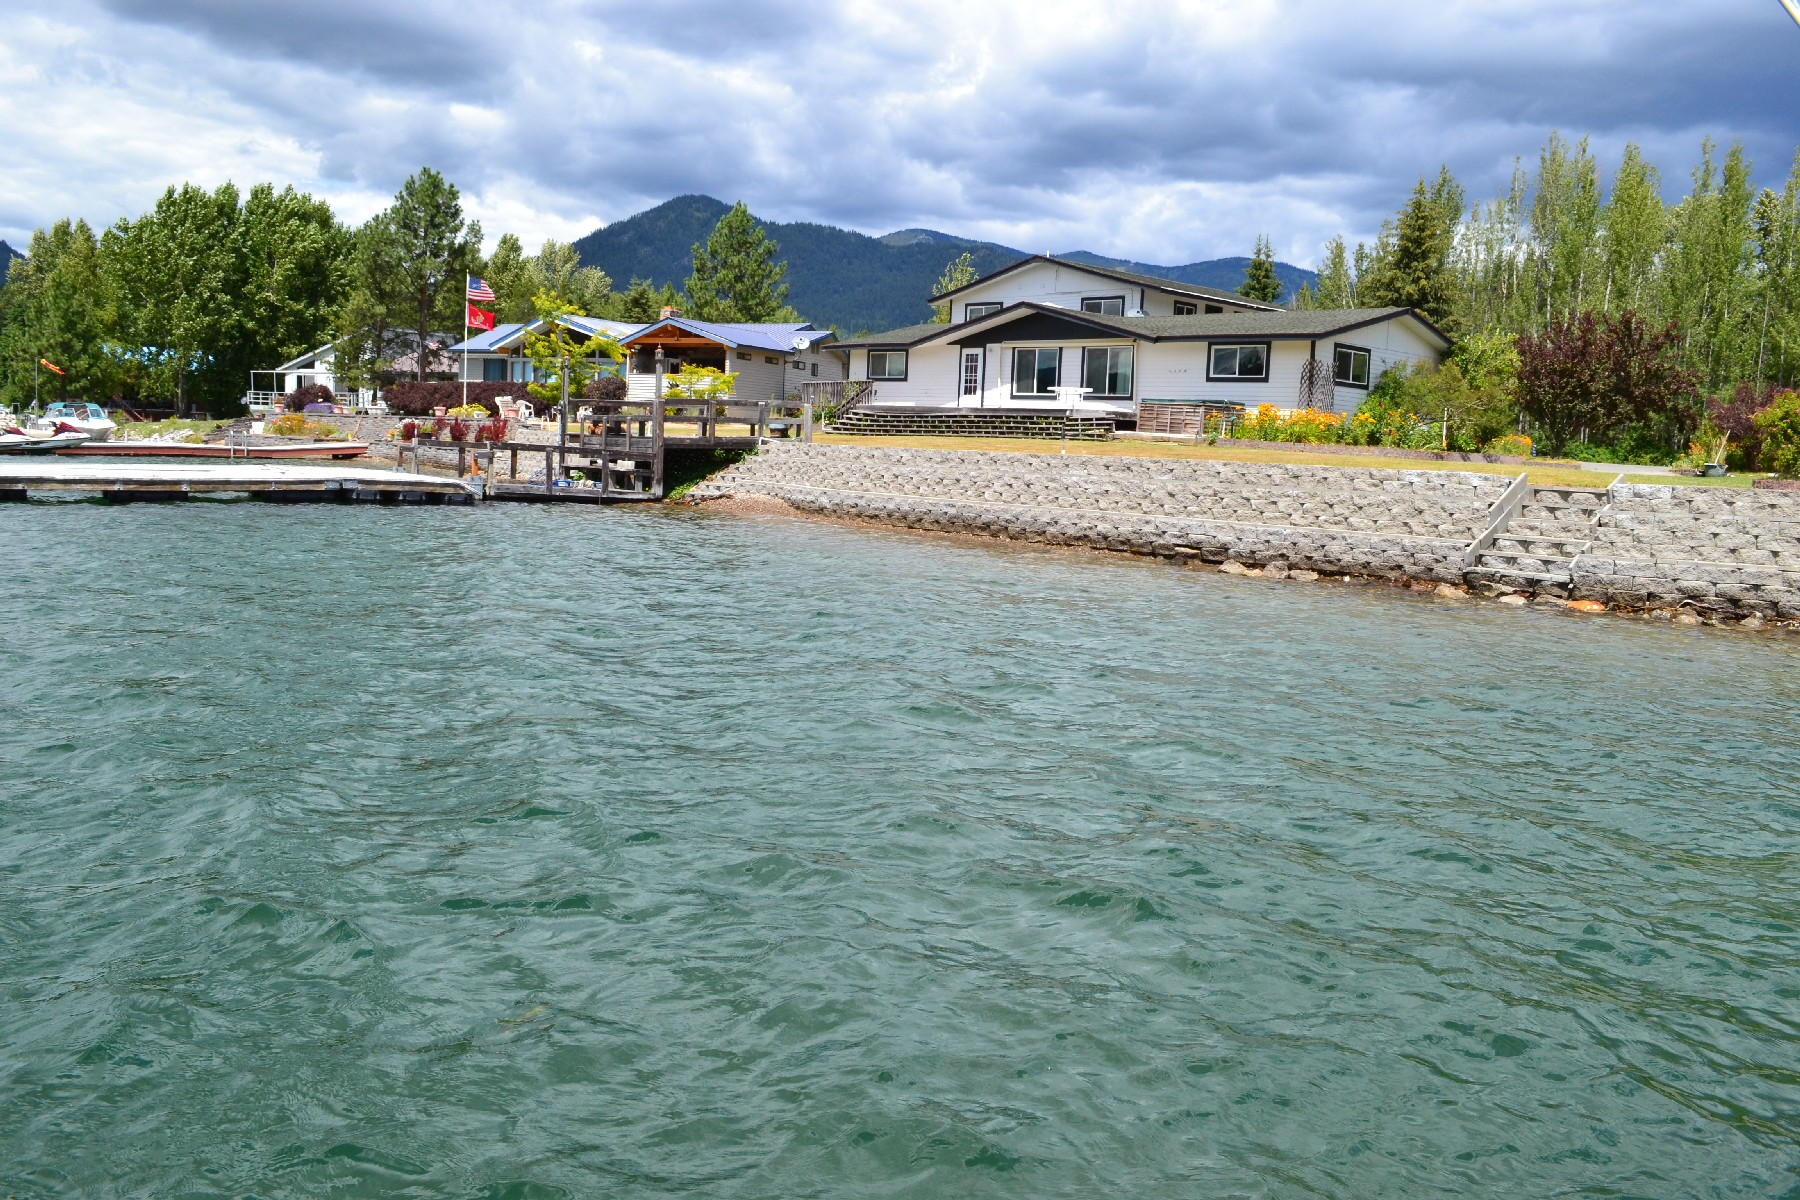 獨棟家庭住宅 為 出售 在 105' of Pend Oreille River frontage in Snug Harbor 500 Snug Harbor Sandpoint, 愛達荷州, 83864 美國